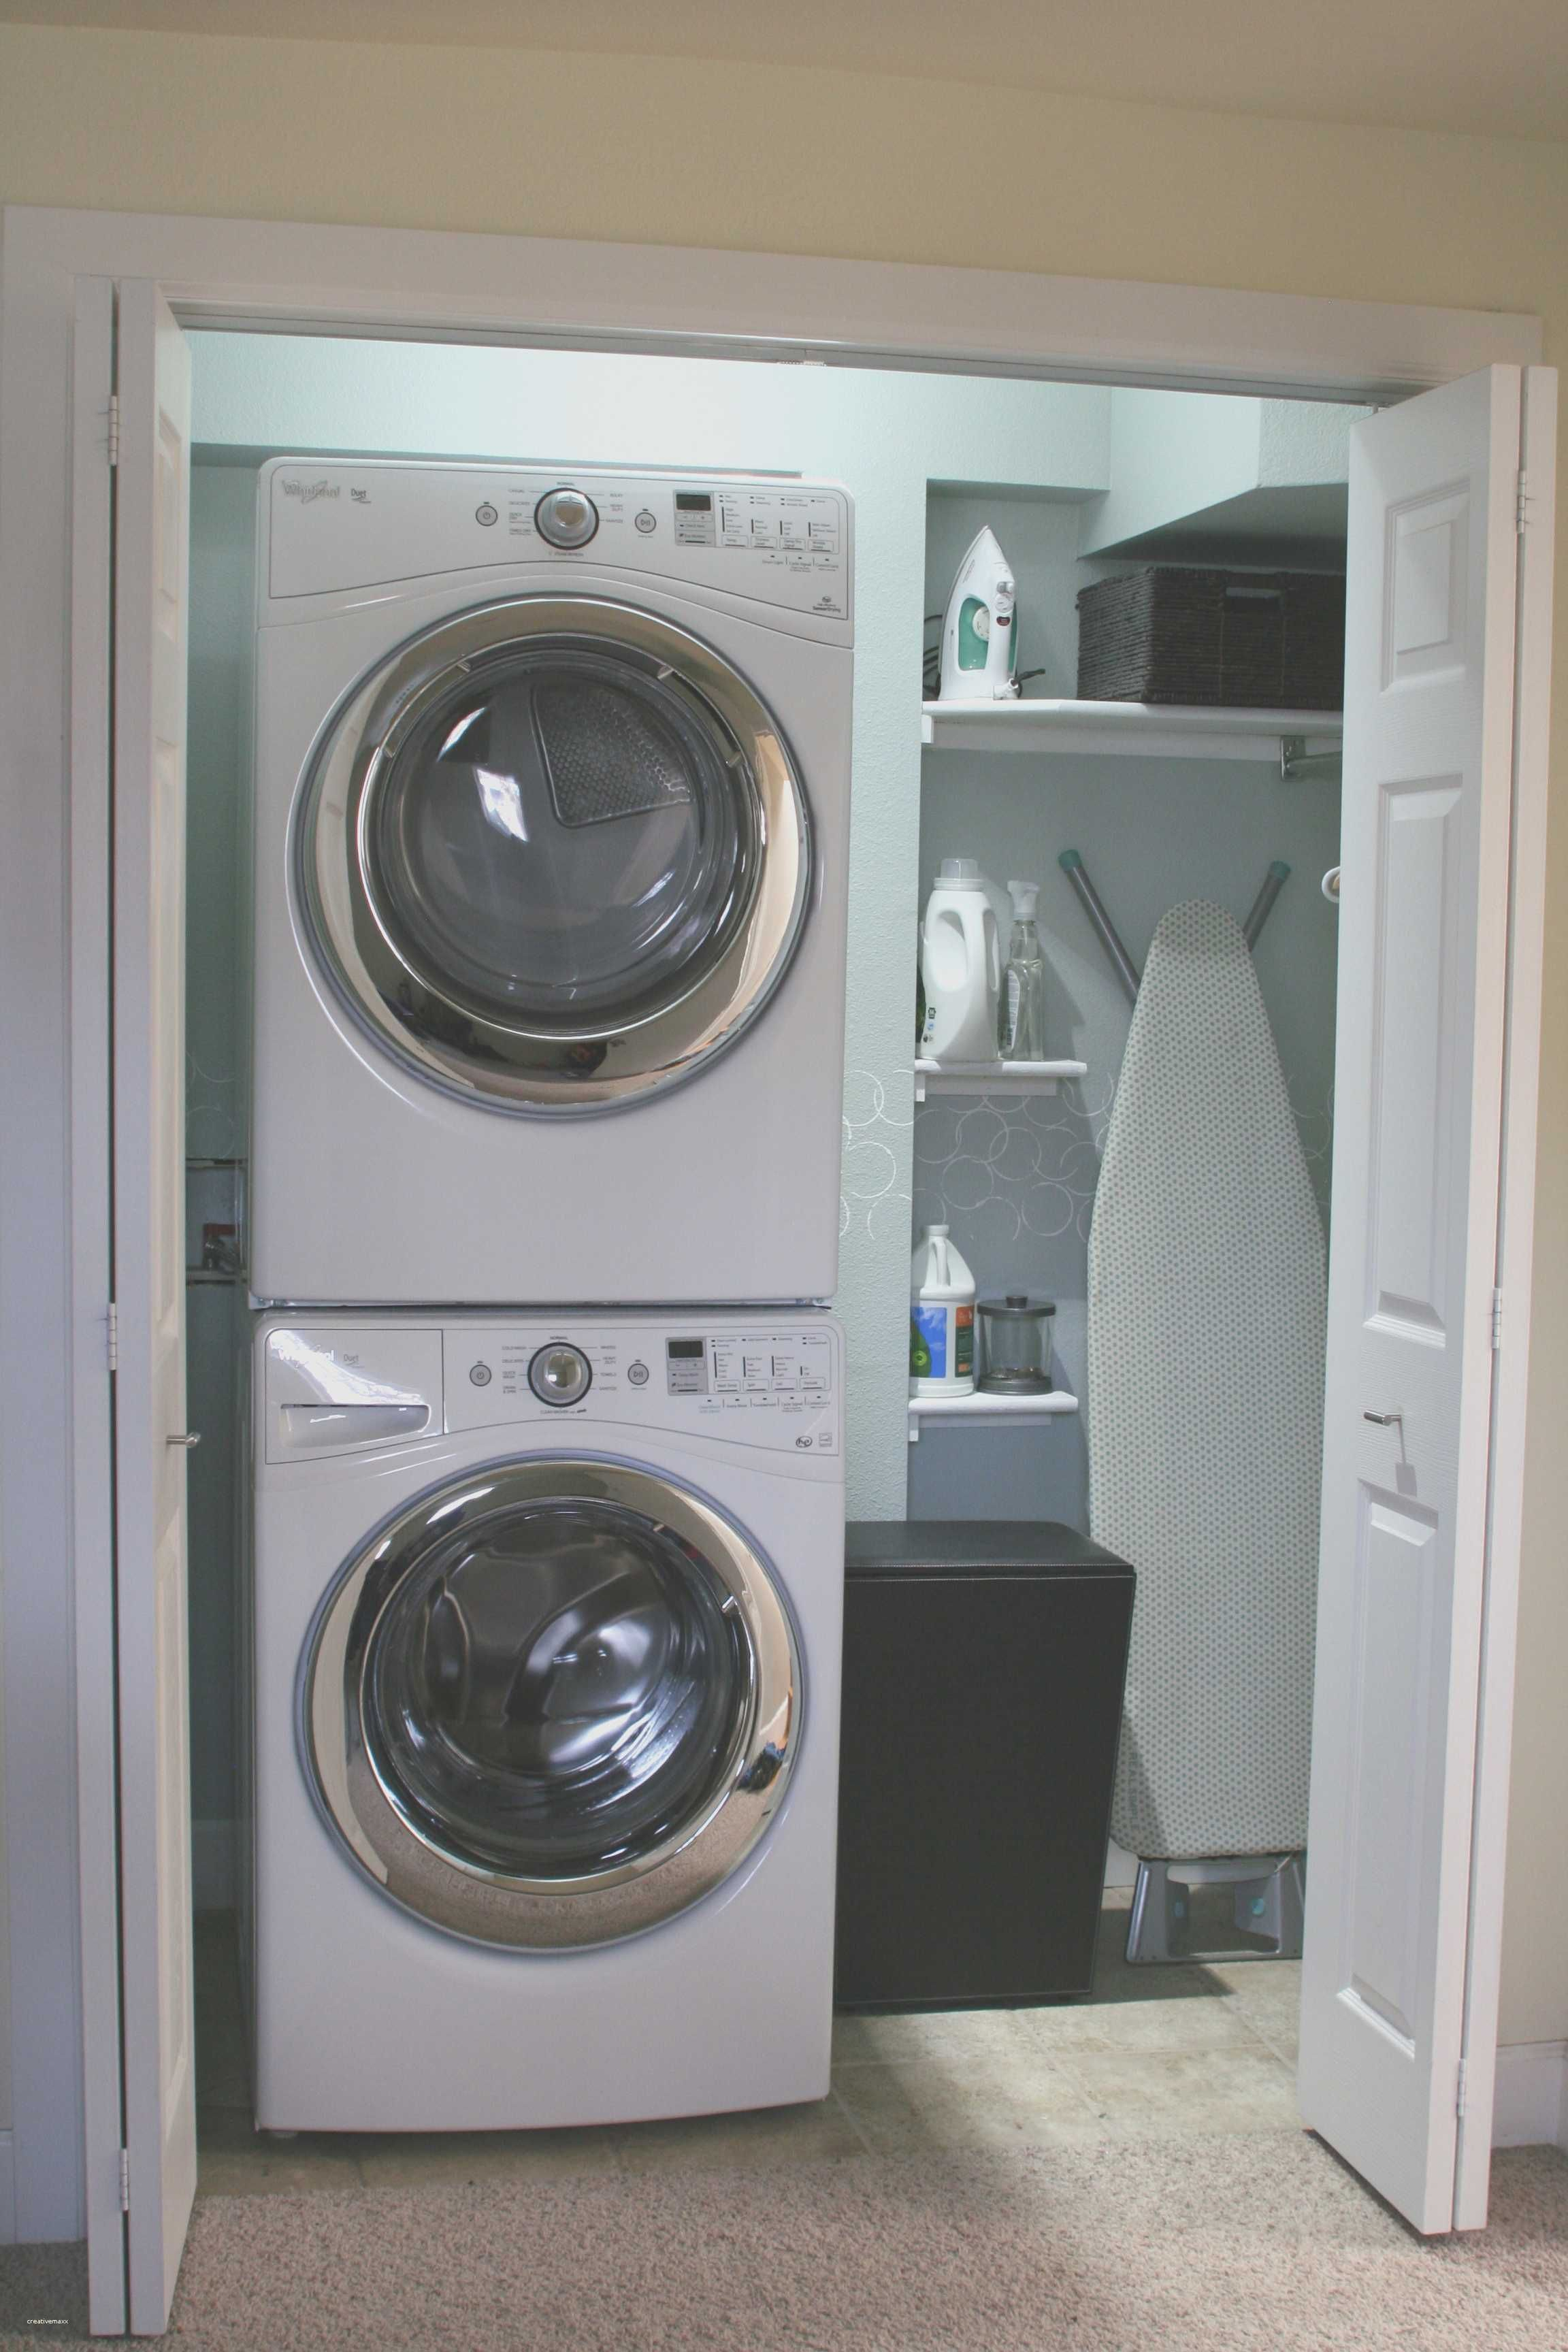 Gentil Laundry Room Ideas Small Stackable Closet   Luxury Laundry Room Ideas Small  Stackable Closet, Laundry Room Superb Design Ideas Mudroom Ideas Laundry  Room # ...